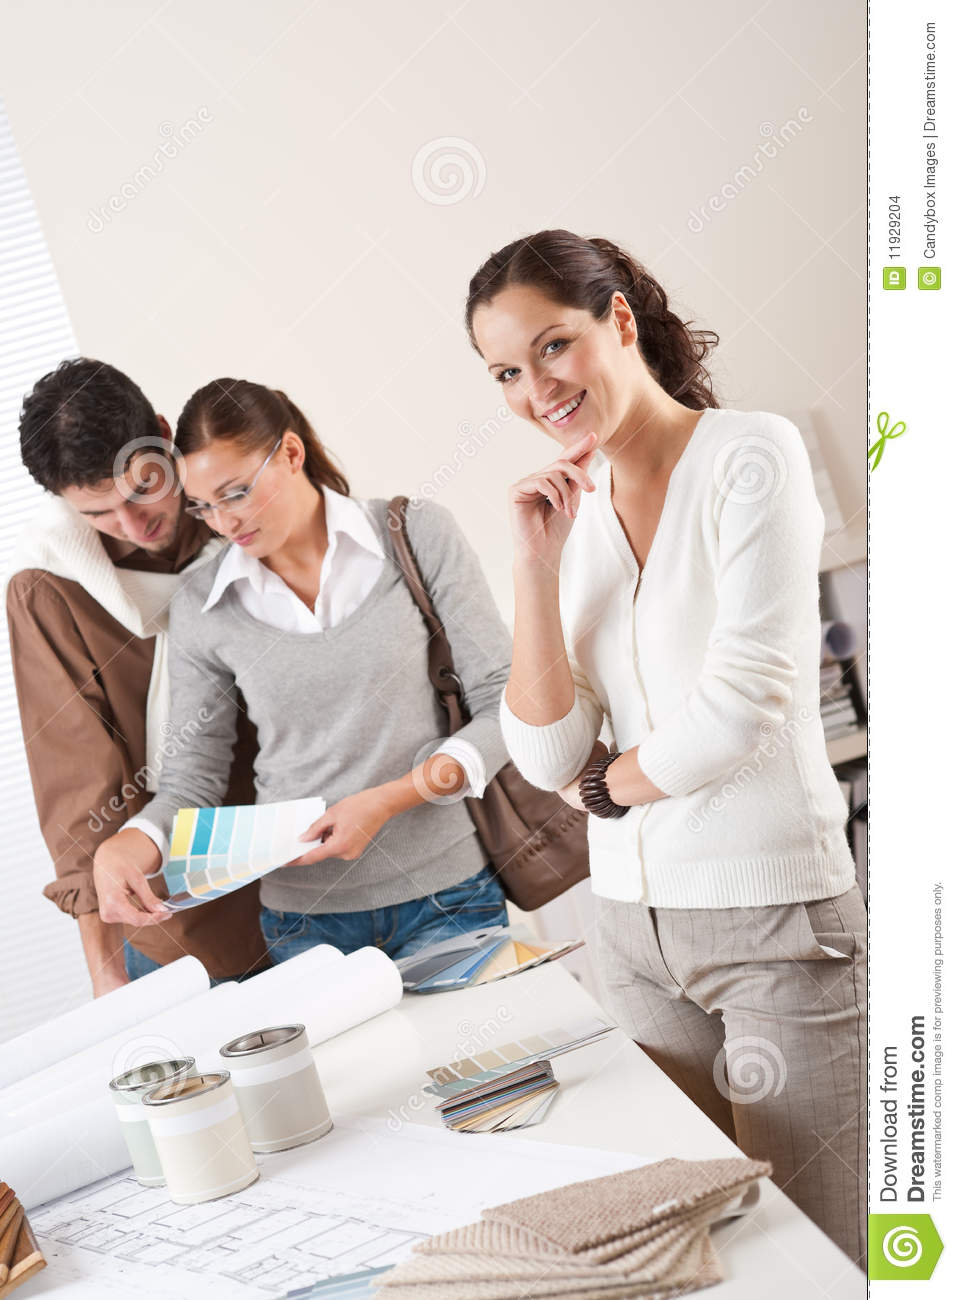 Female interior designer with two clients stock images for An interior designer